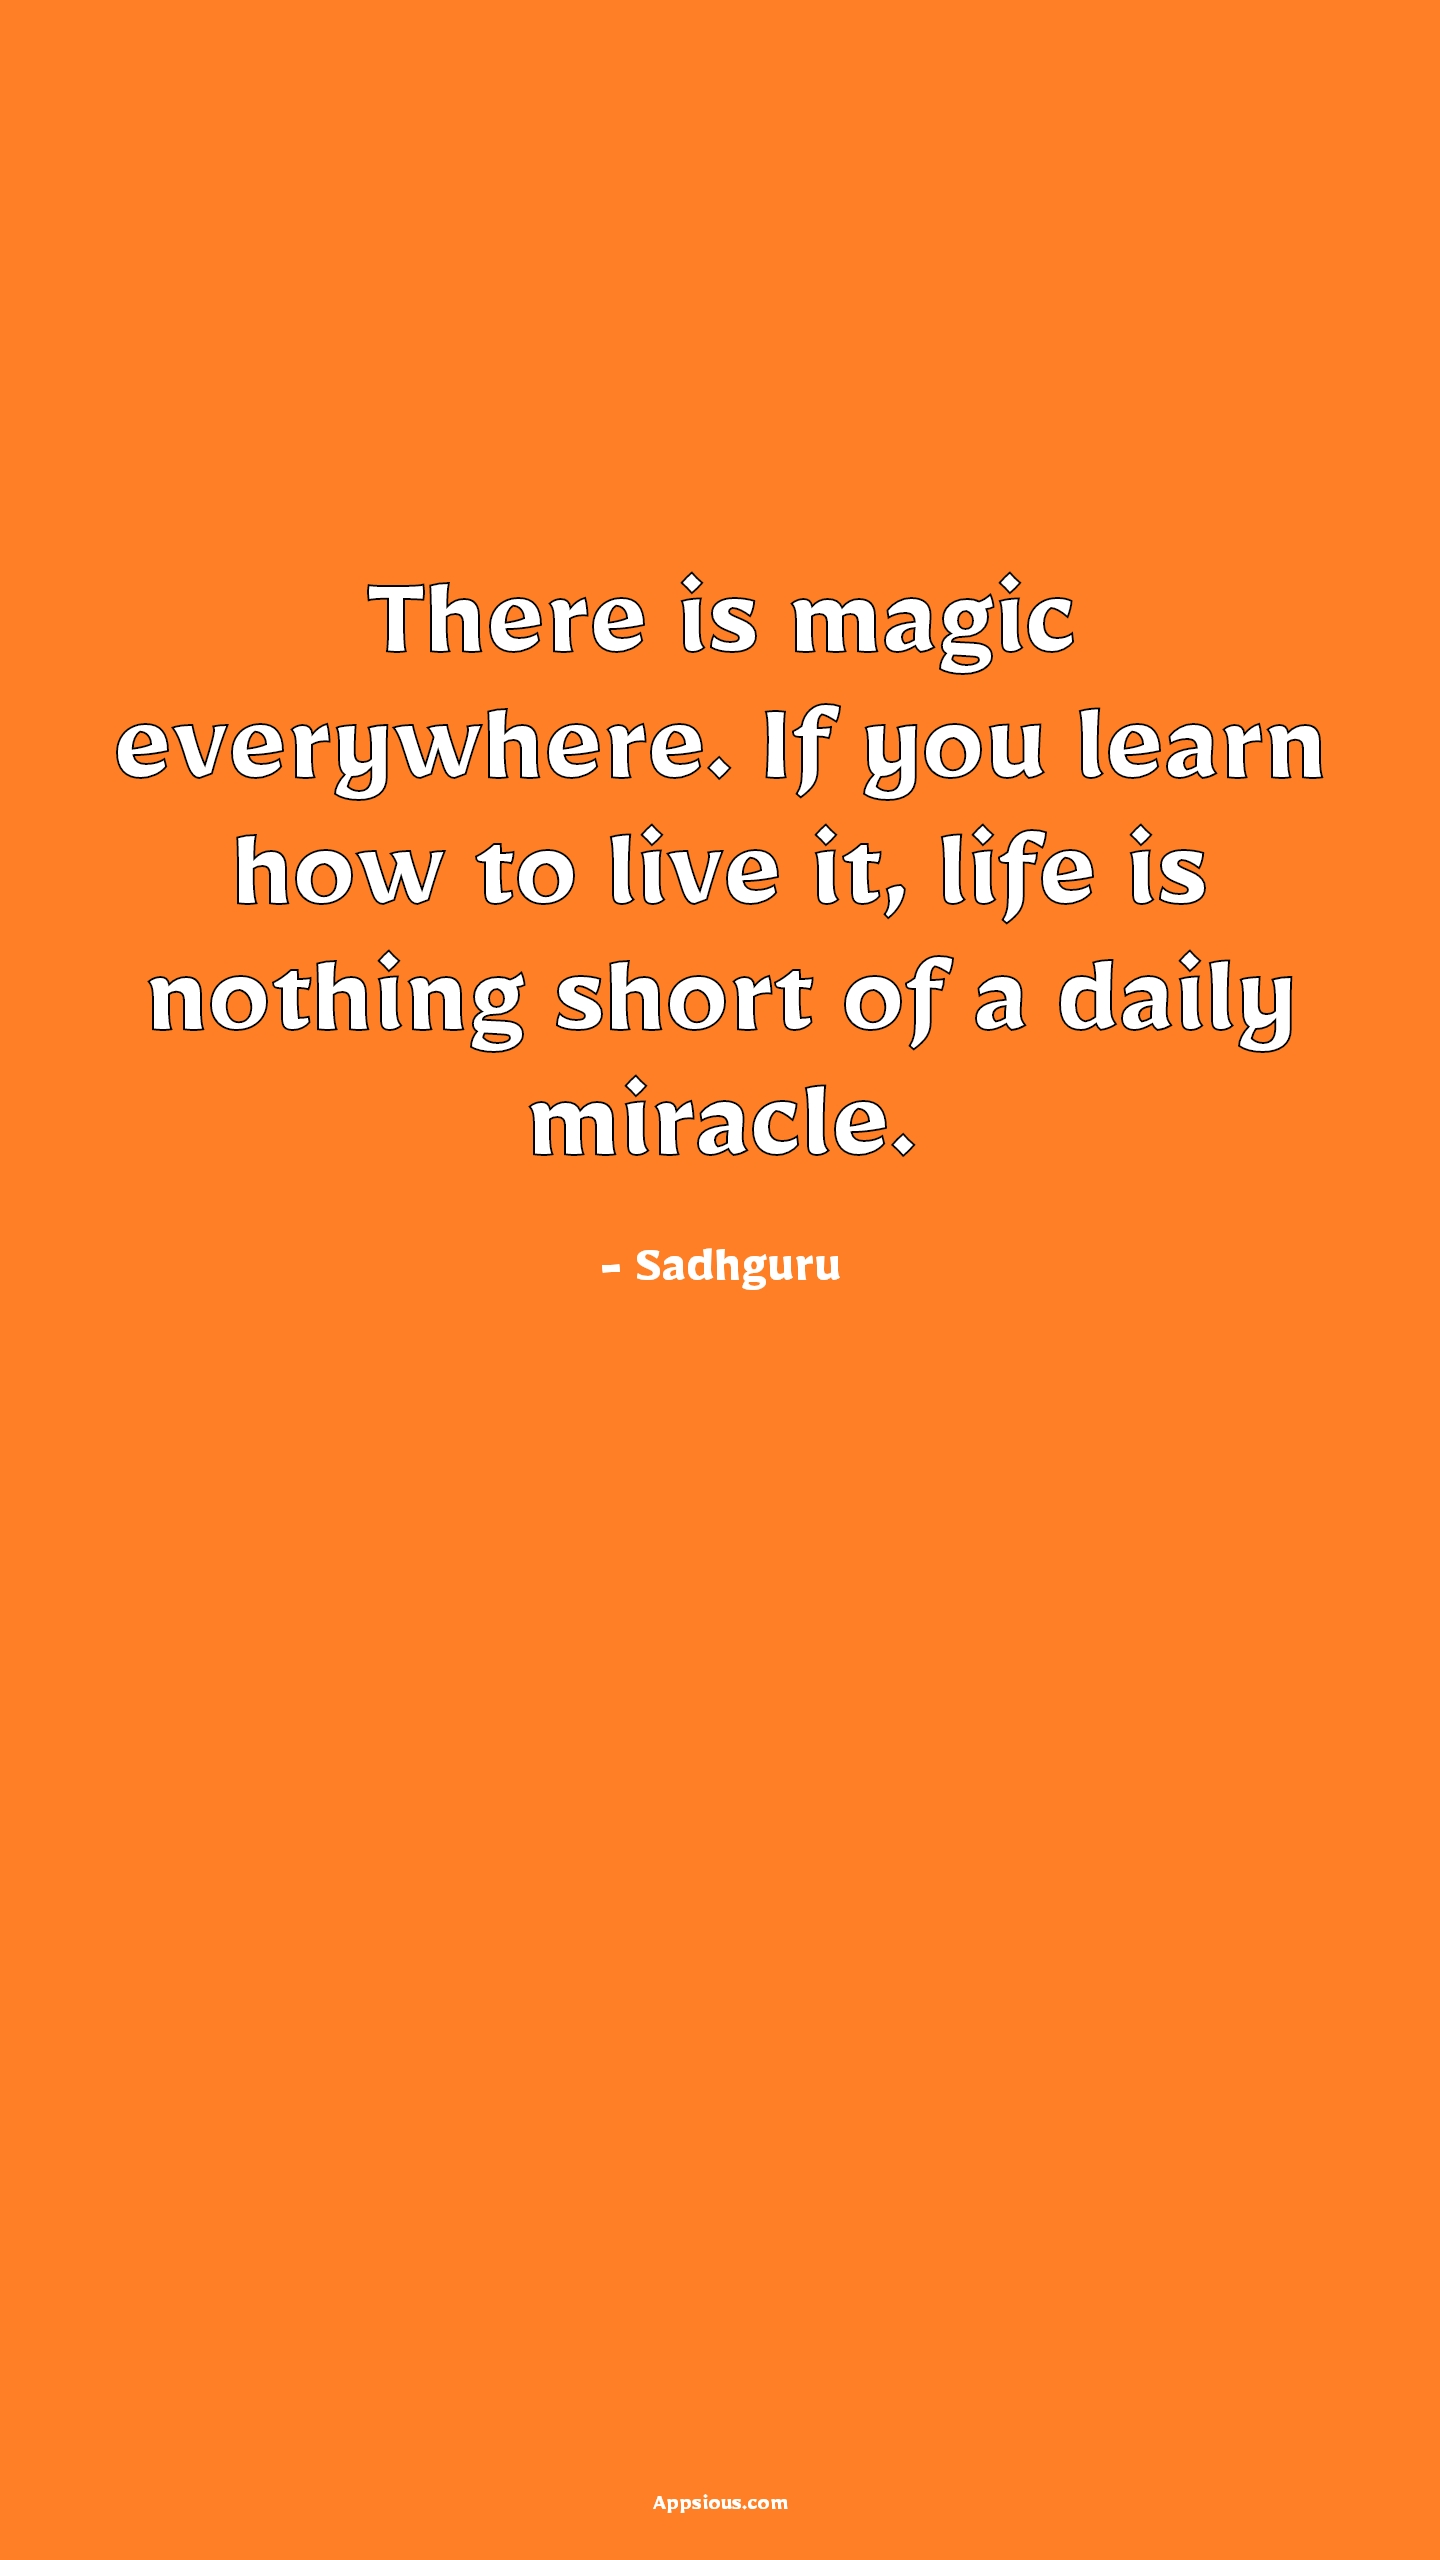 There is magic everywhere. If you learn how to live it, life is nothing short of a daily miracle.